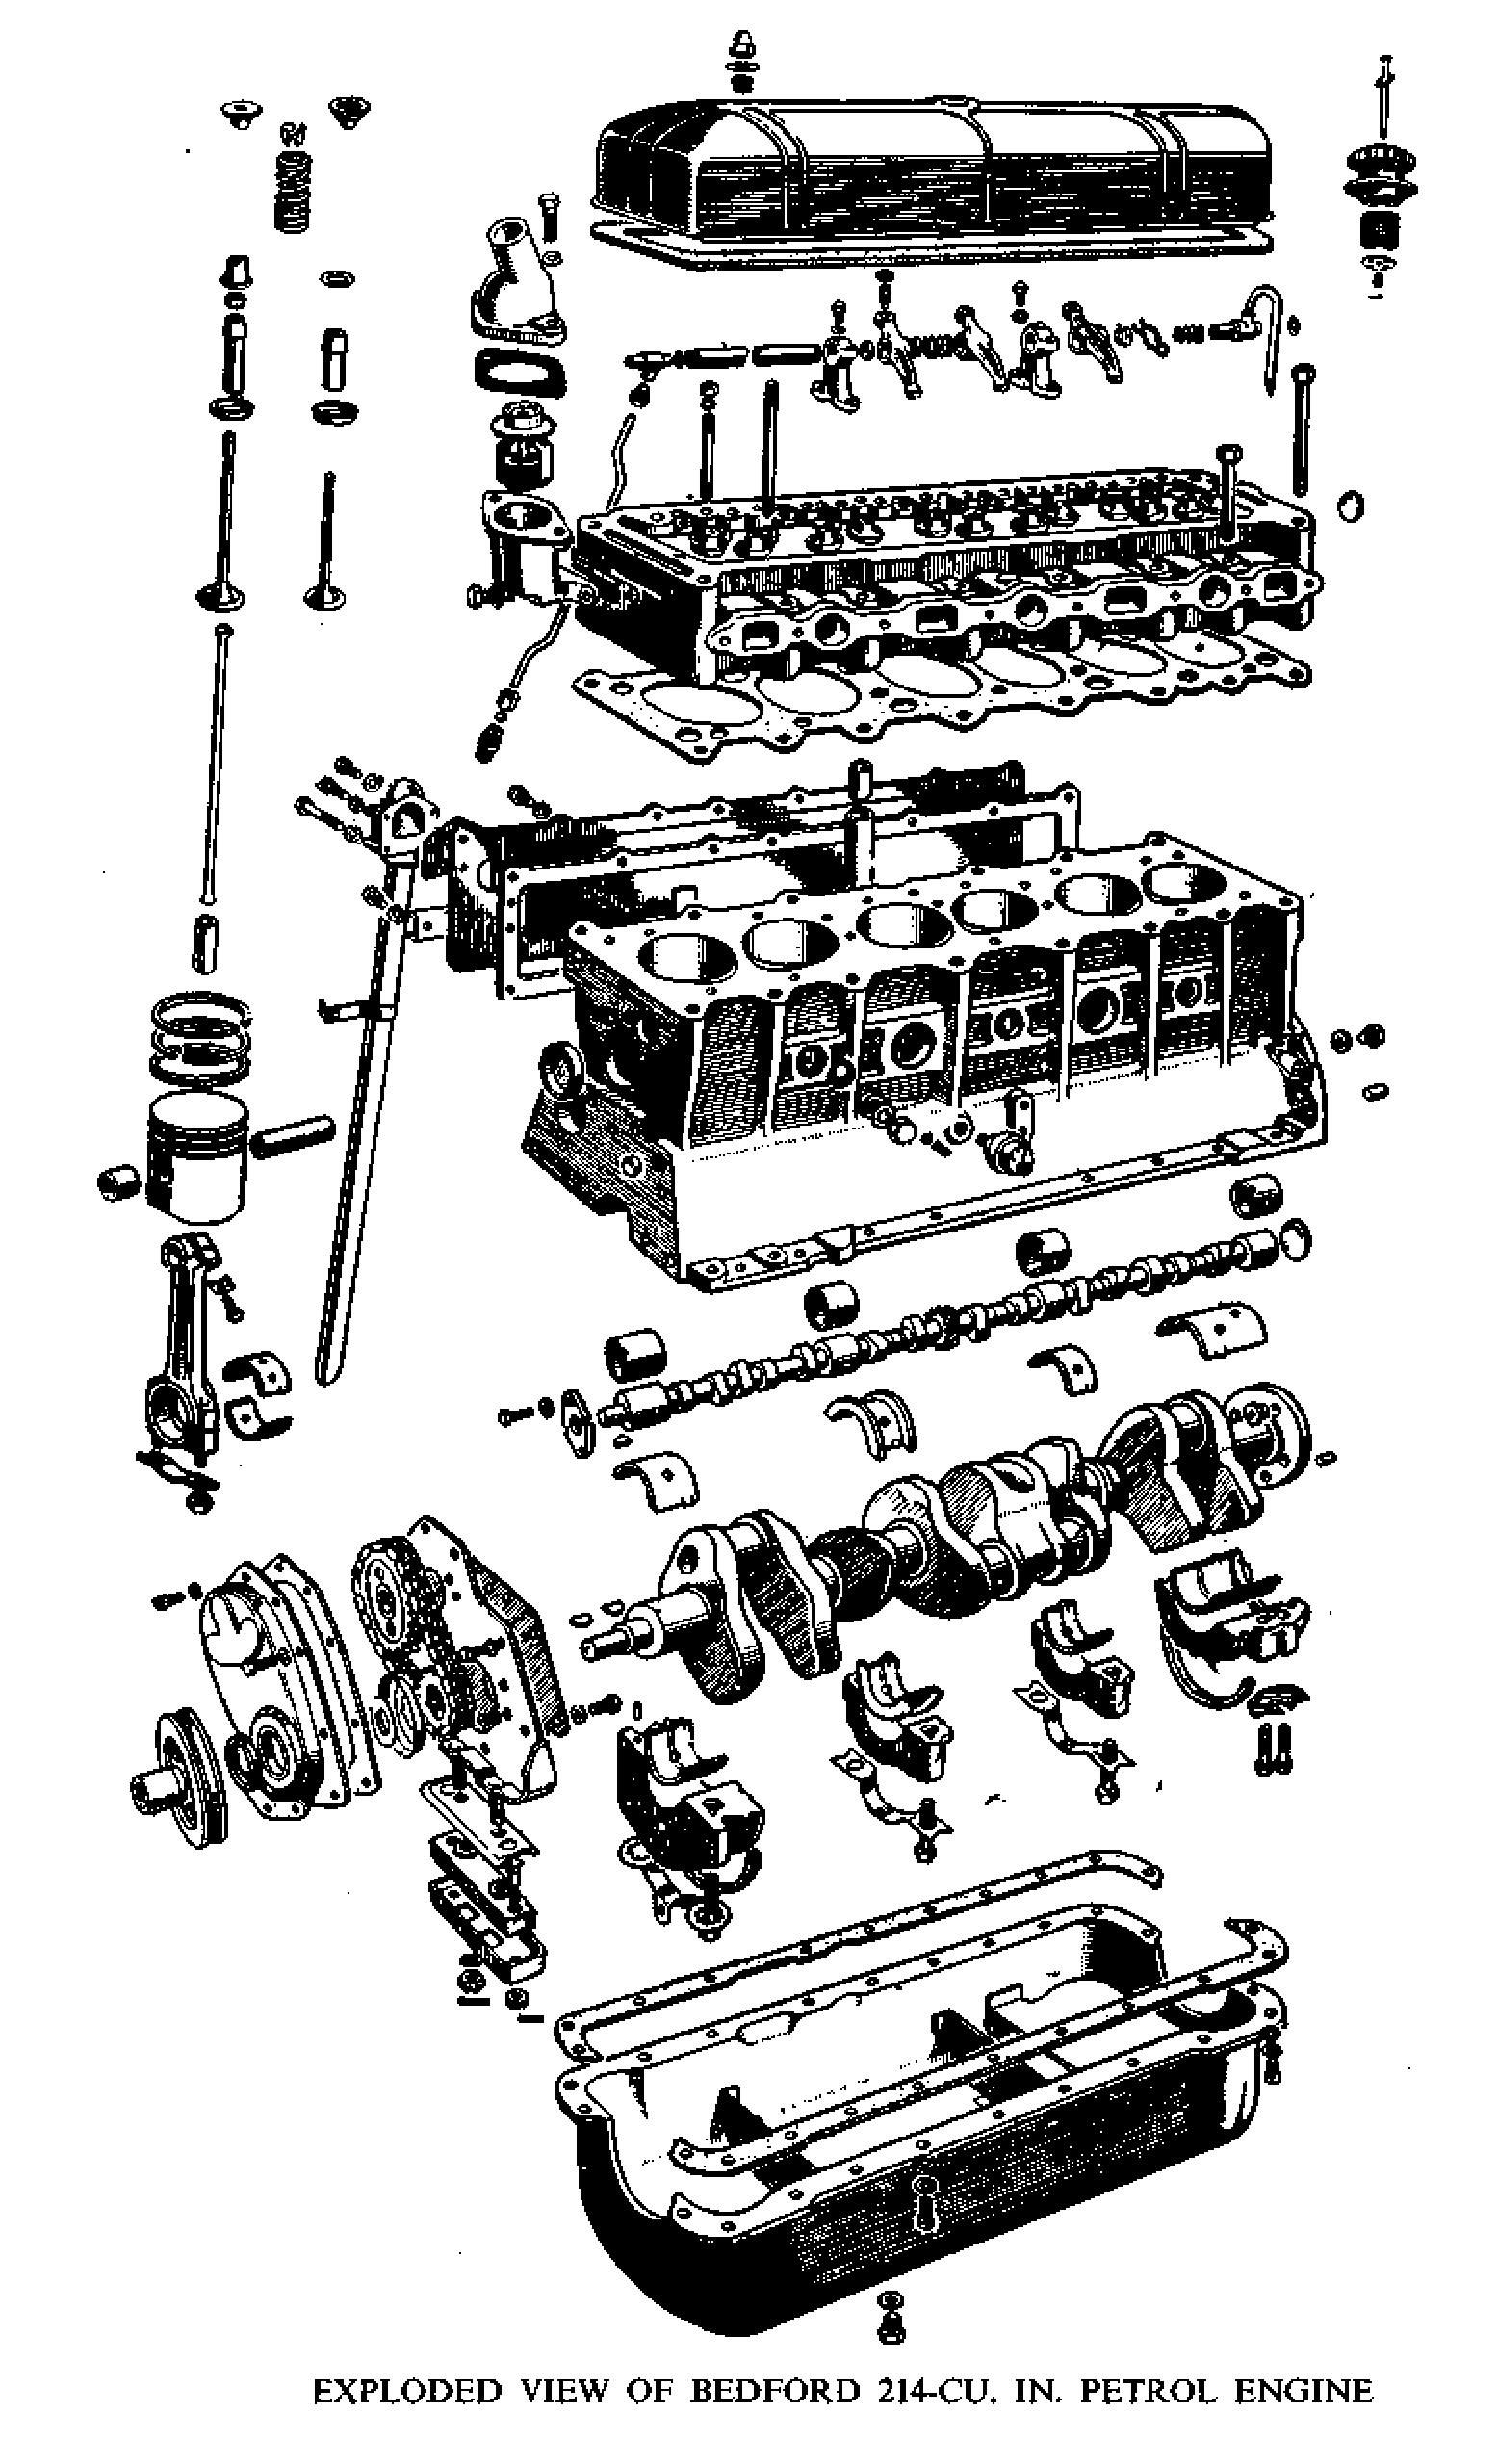 The 214 c.in engine common in many Bedford trucks